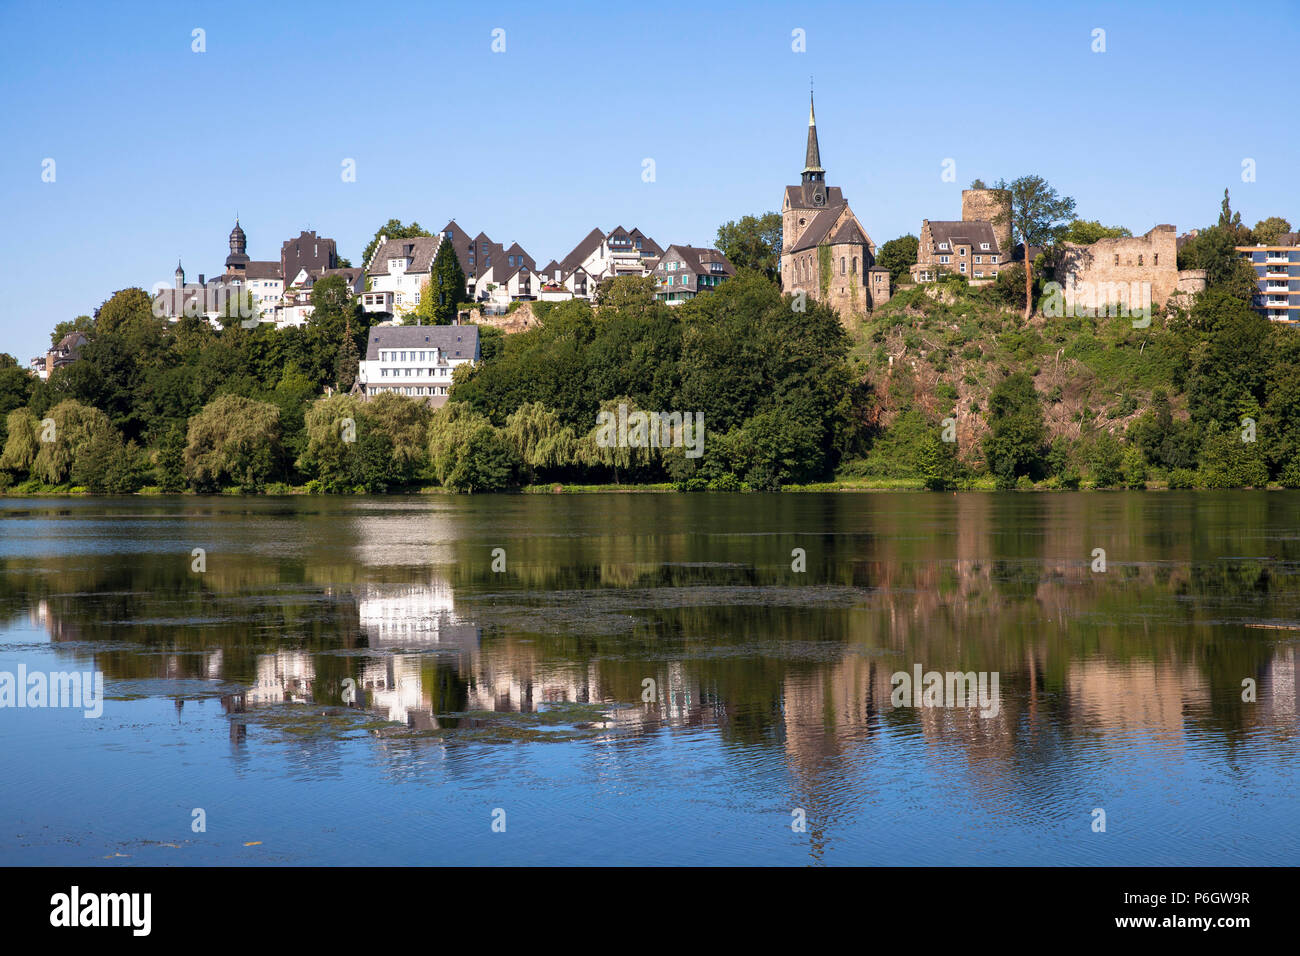 Germany, the city of Wetter on the river Ruhr, lake Harkort, view to the protestant church and the castle Wetter.  Deutschland, Stadt Wetter an der Ru - Stock Image